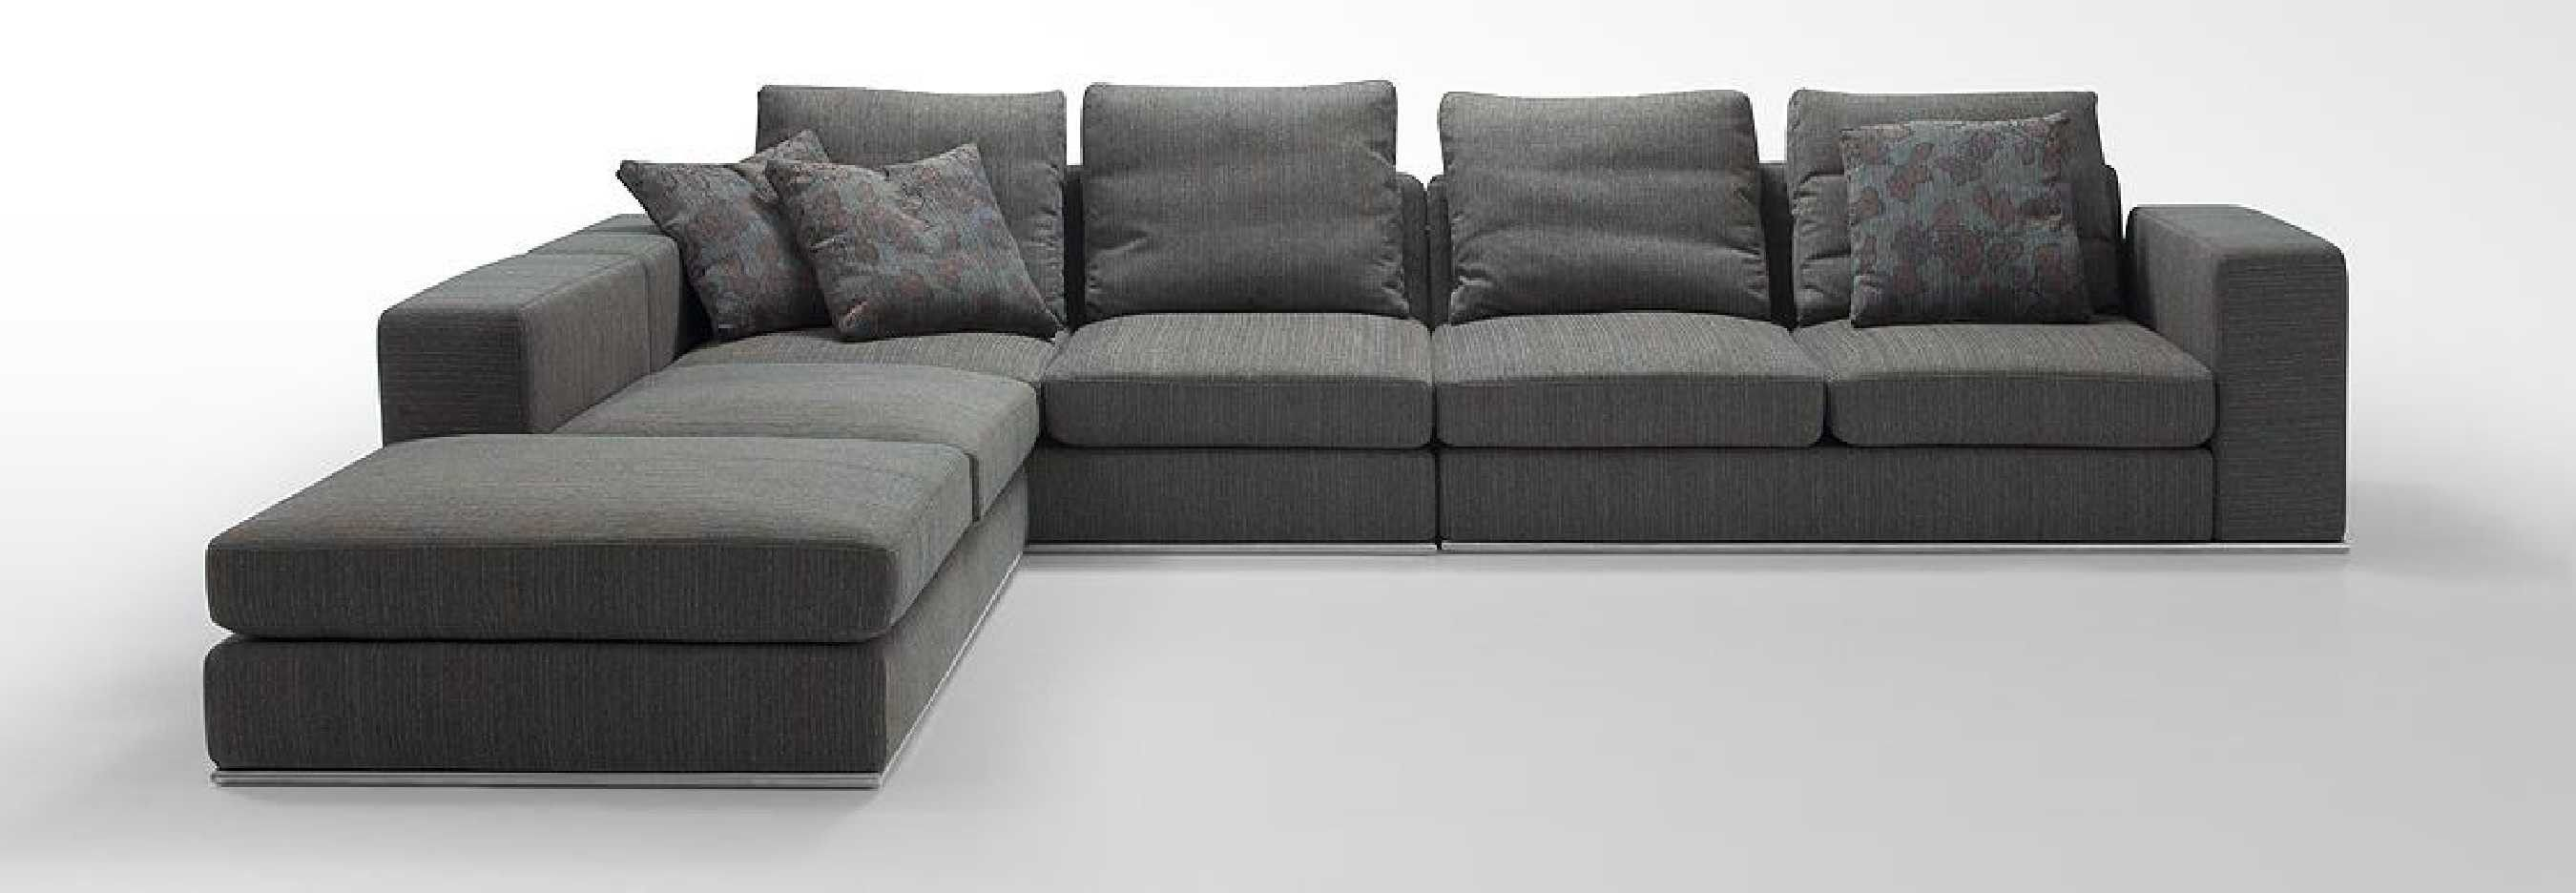 Appealing L Shaped Sofa Come With Grey Modern Comfy Fabric L Shaped Sofa  Withu2026